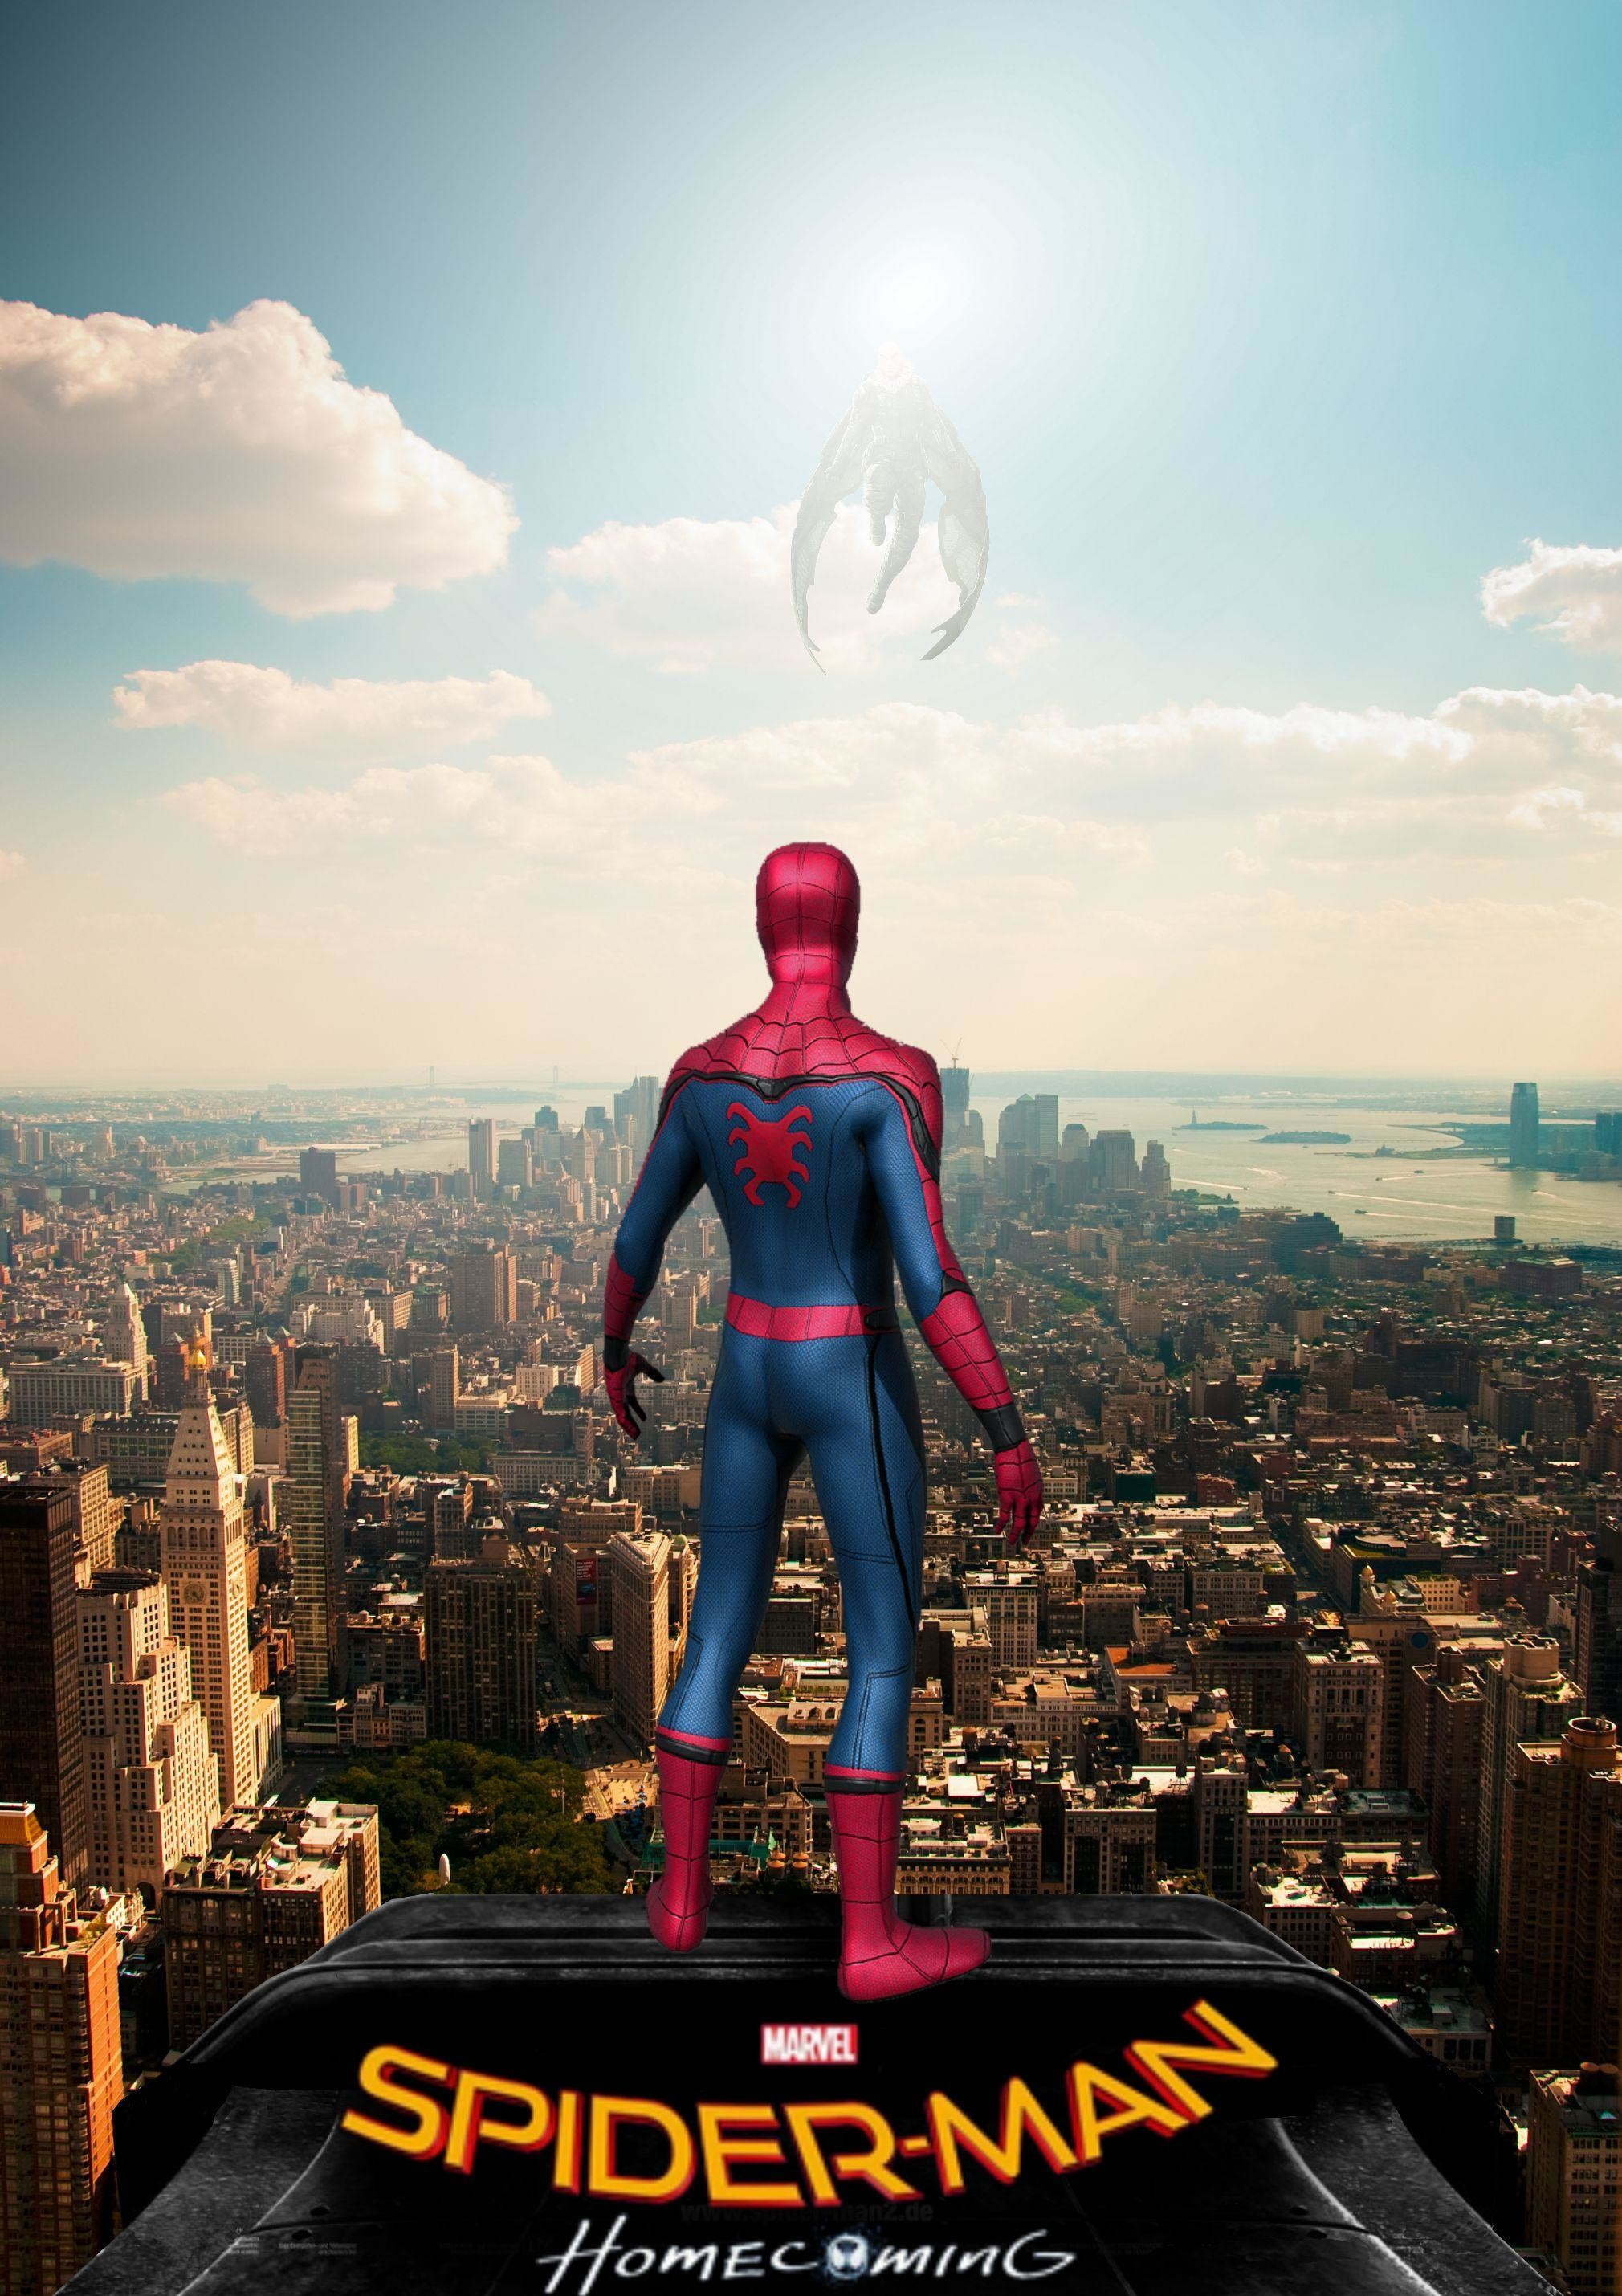 66 4K Spiderman Wallpapers on WallpaperPlay 2020x2859